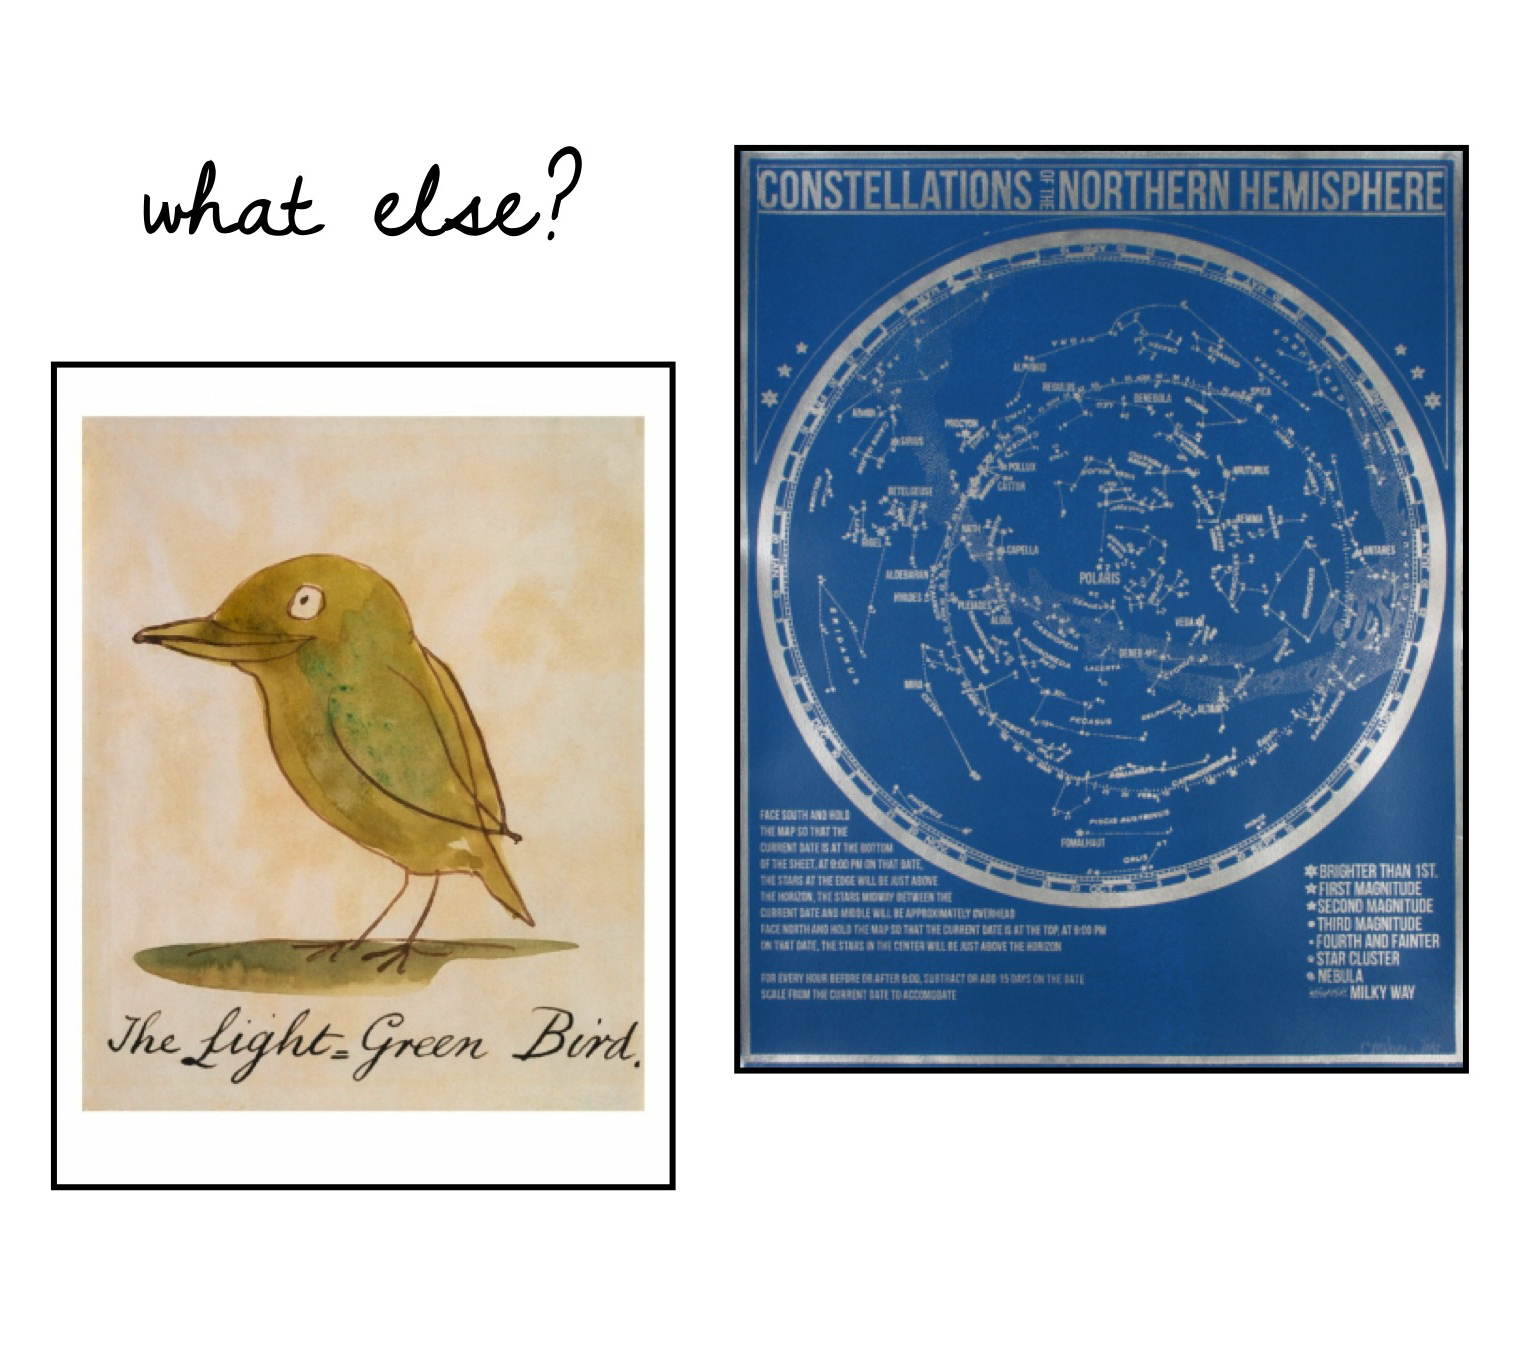 Edward Lear, The Light Green Bird; Constellations of the Northern Hemisphere prints